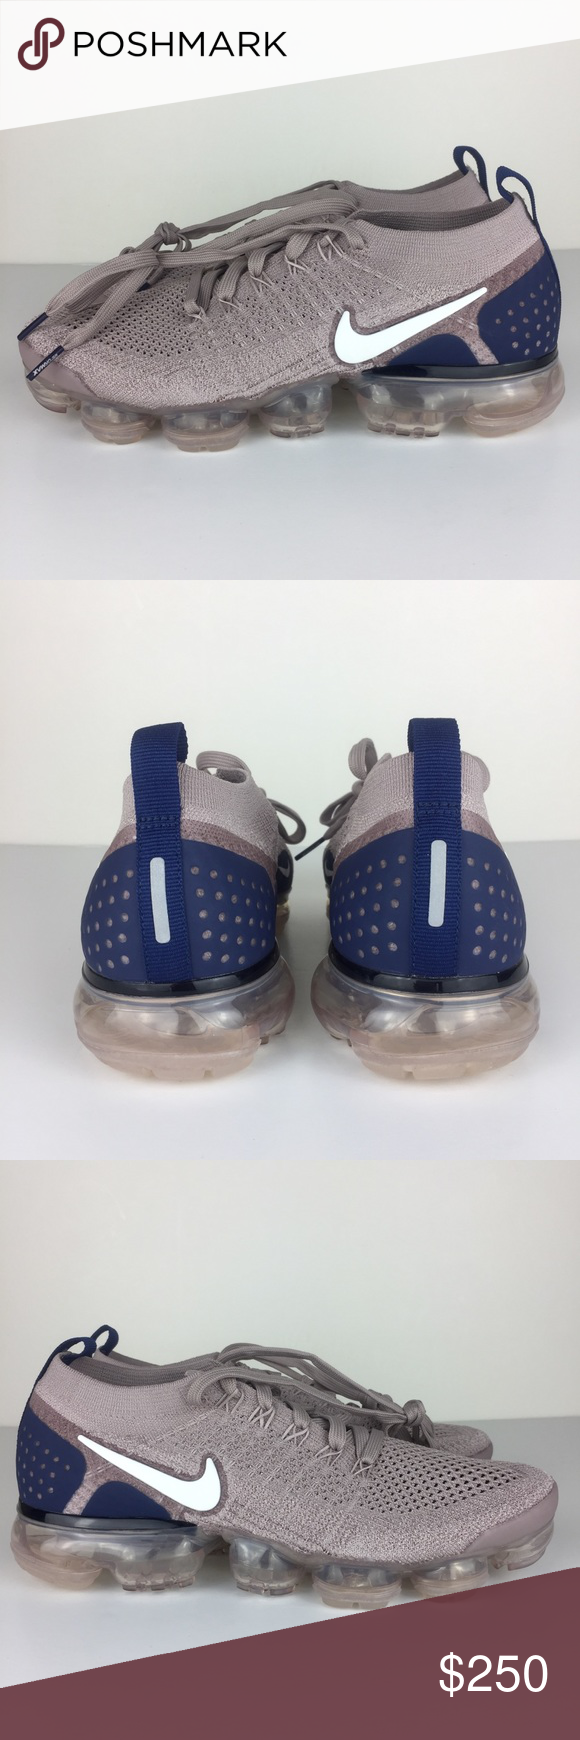 958d35a628077 Nike Air VaporMax Flyknit 2 Taupe Blue Brown pink Nike Air vapormax flyknit  2 Diffused taupe Phantom blue colorway 942842 201 size 7.5 Brand new  without ...